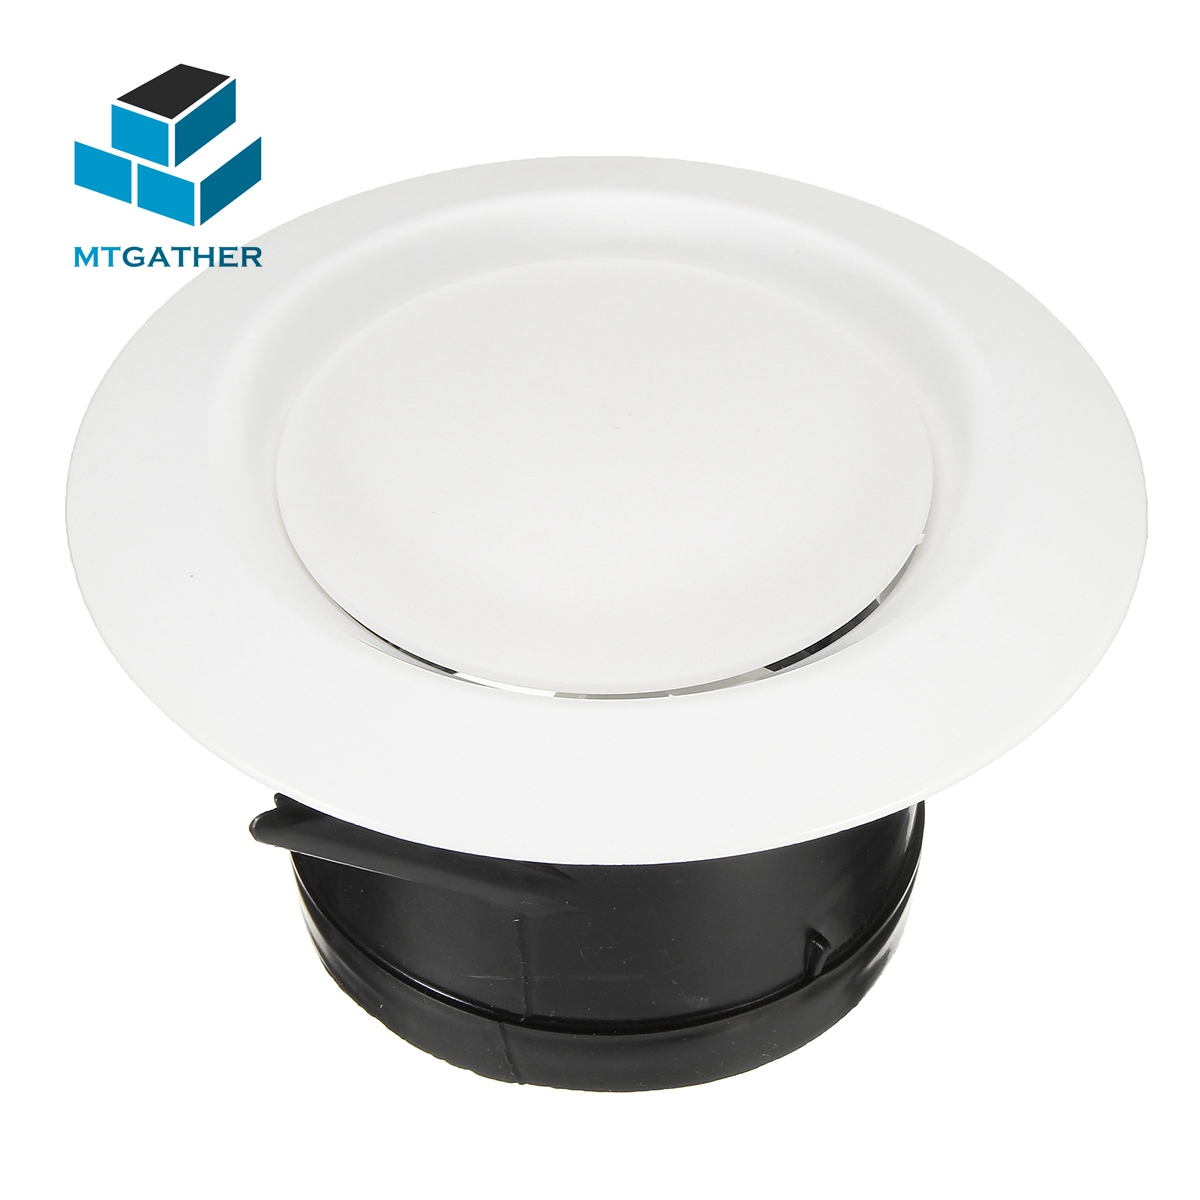 MTGATHER ABC Ventilation Grille Air Grille Round Round Air Vent ABS Louver Grille Cover Heating Cooling Vents Vents